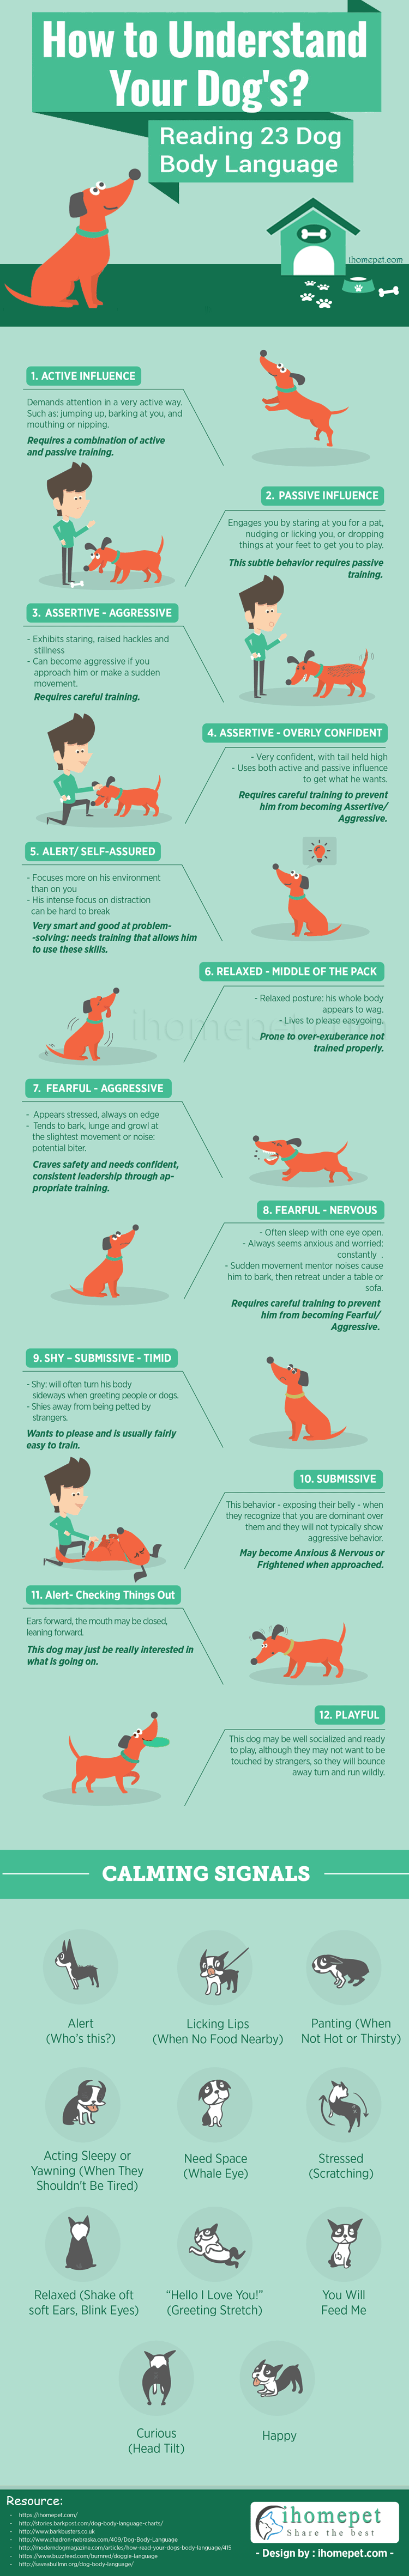 Help You Read Your Dog's Body Language – Reading 23 Dog Body Languages